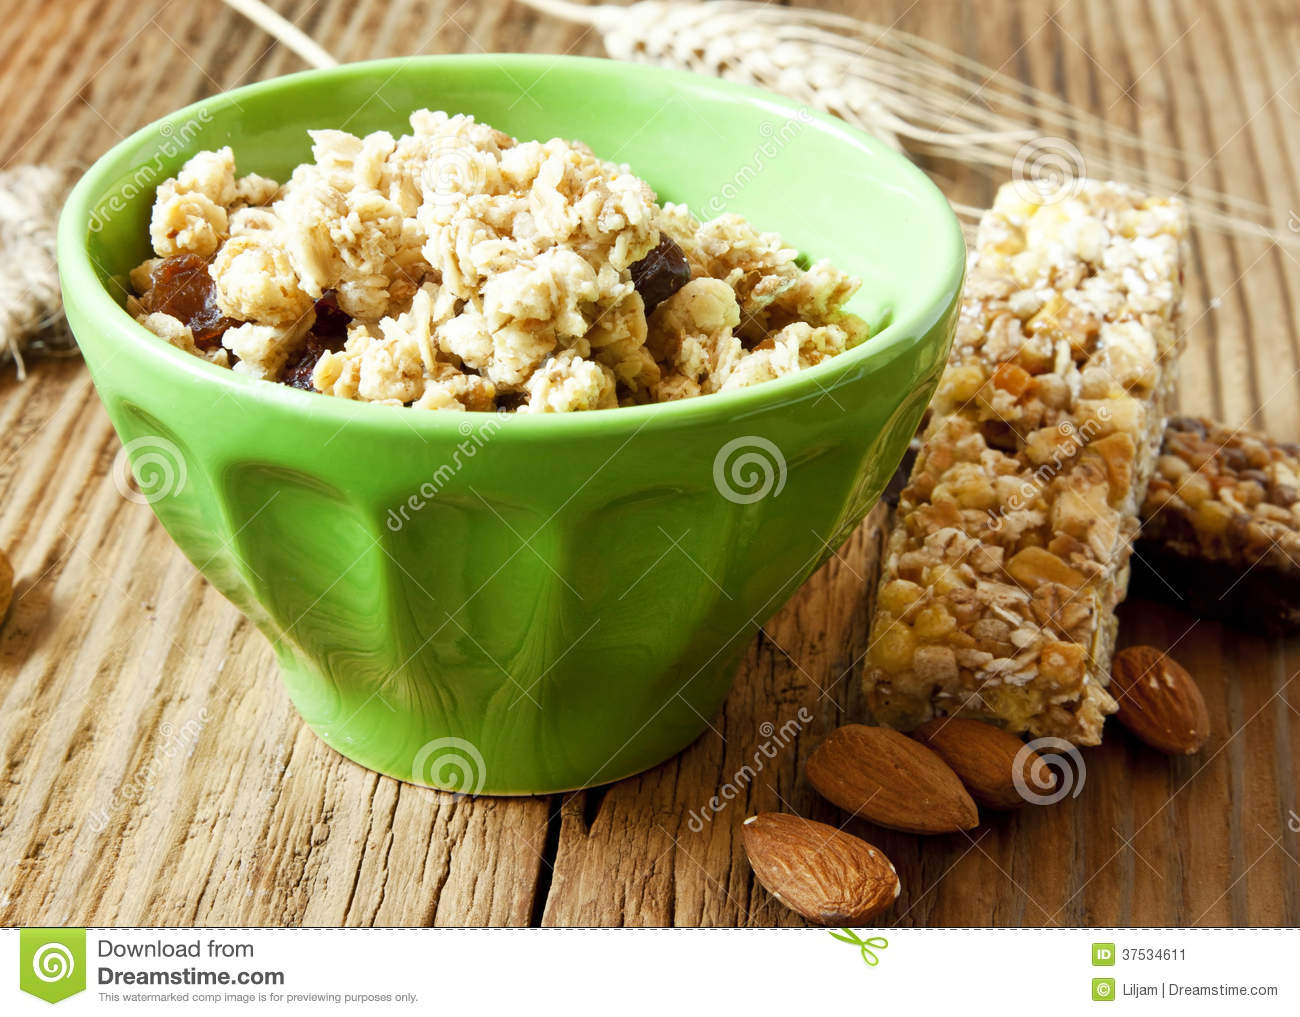 Bowl with Muesli and Cereal Bars